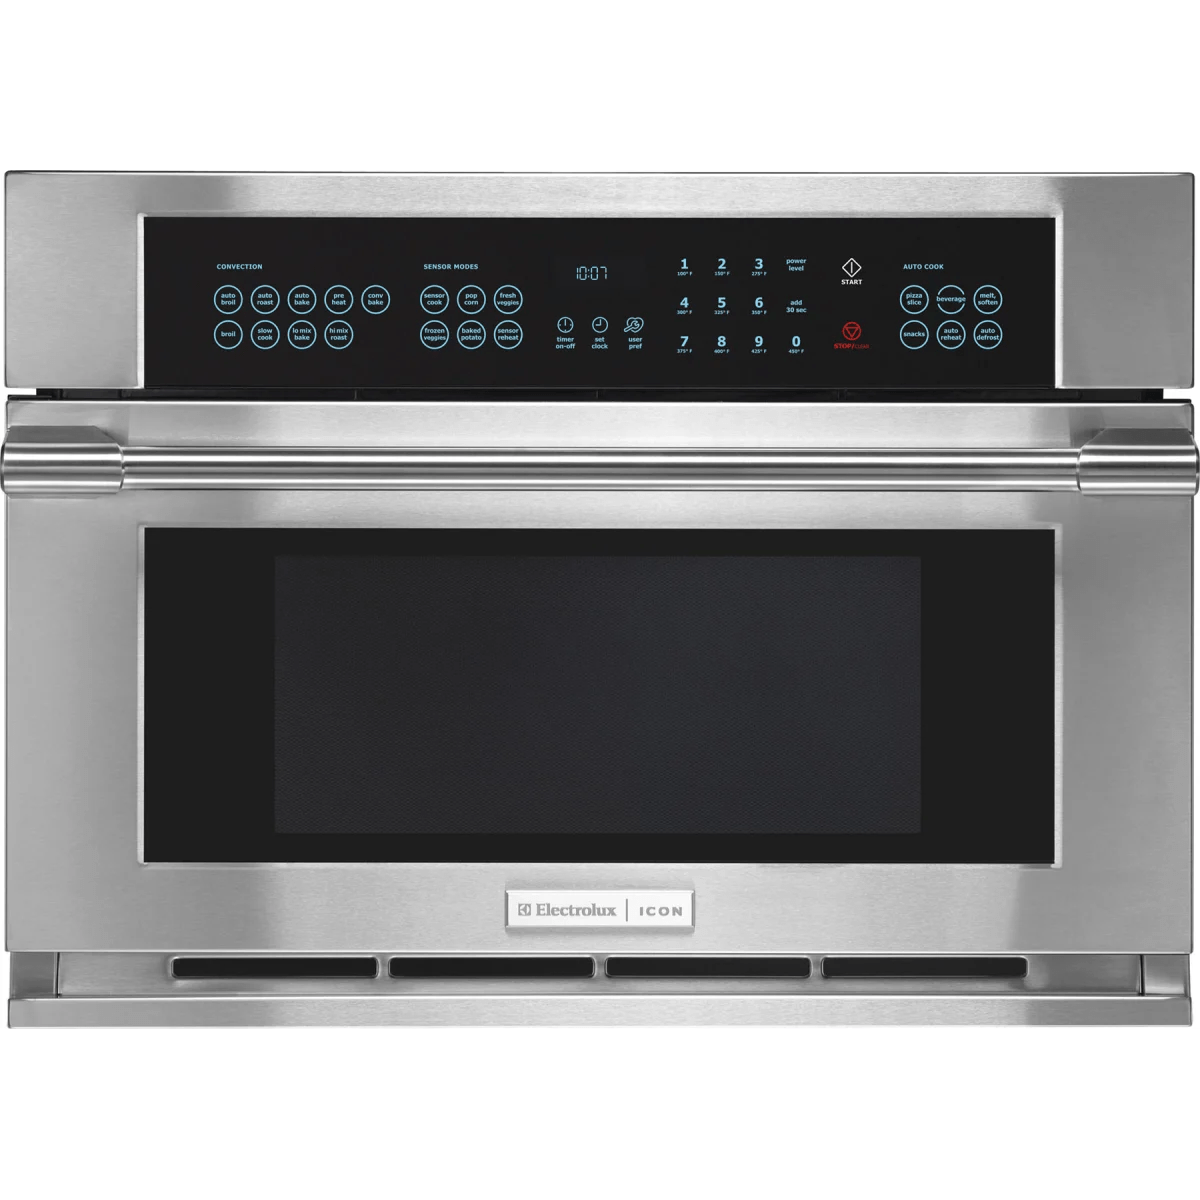 hight resolution of electrolux icon oven wiring diagram